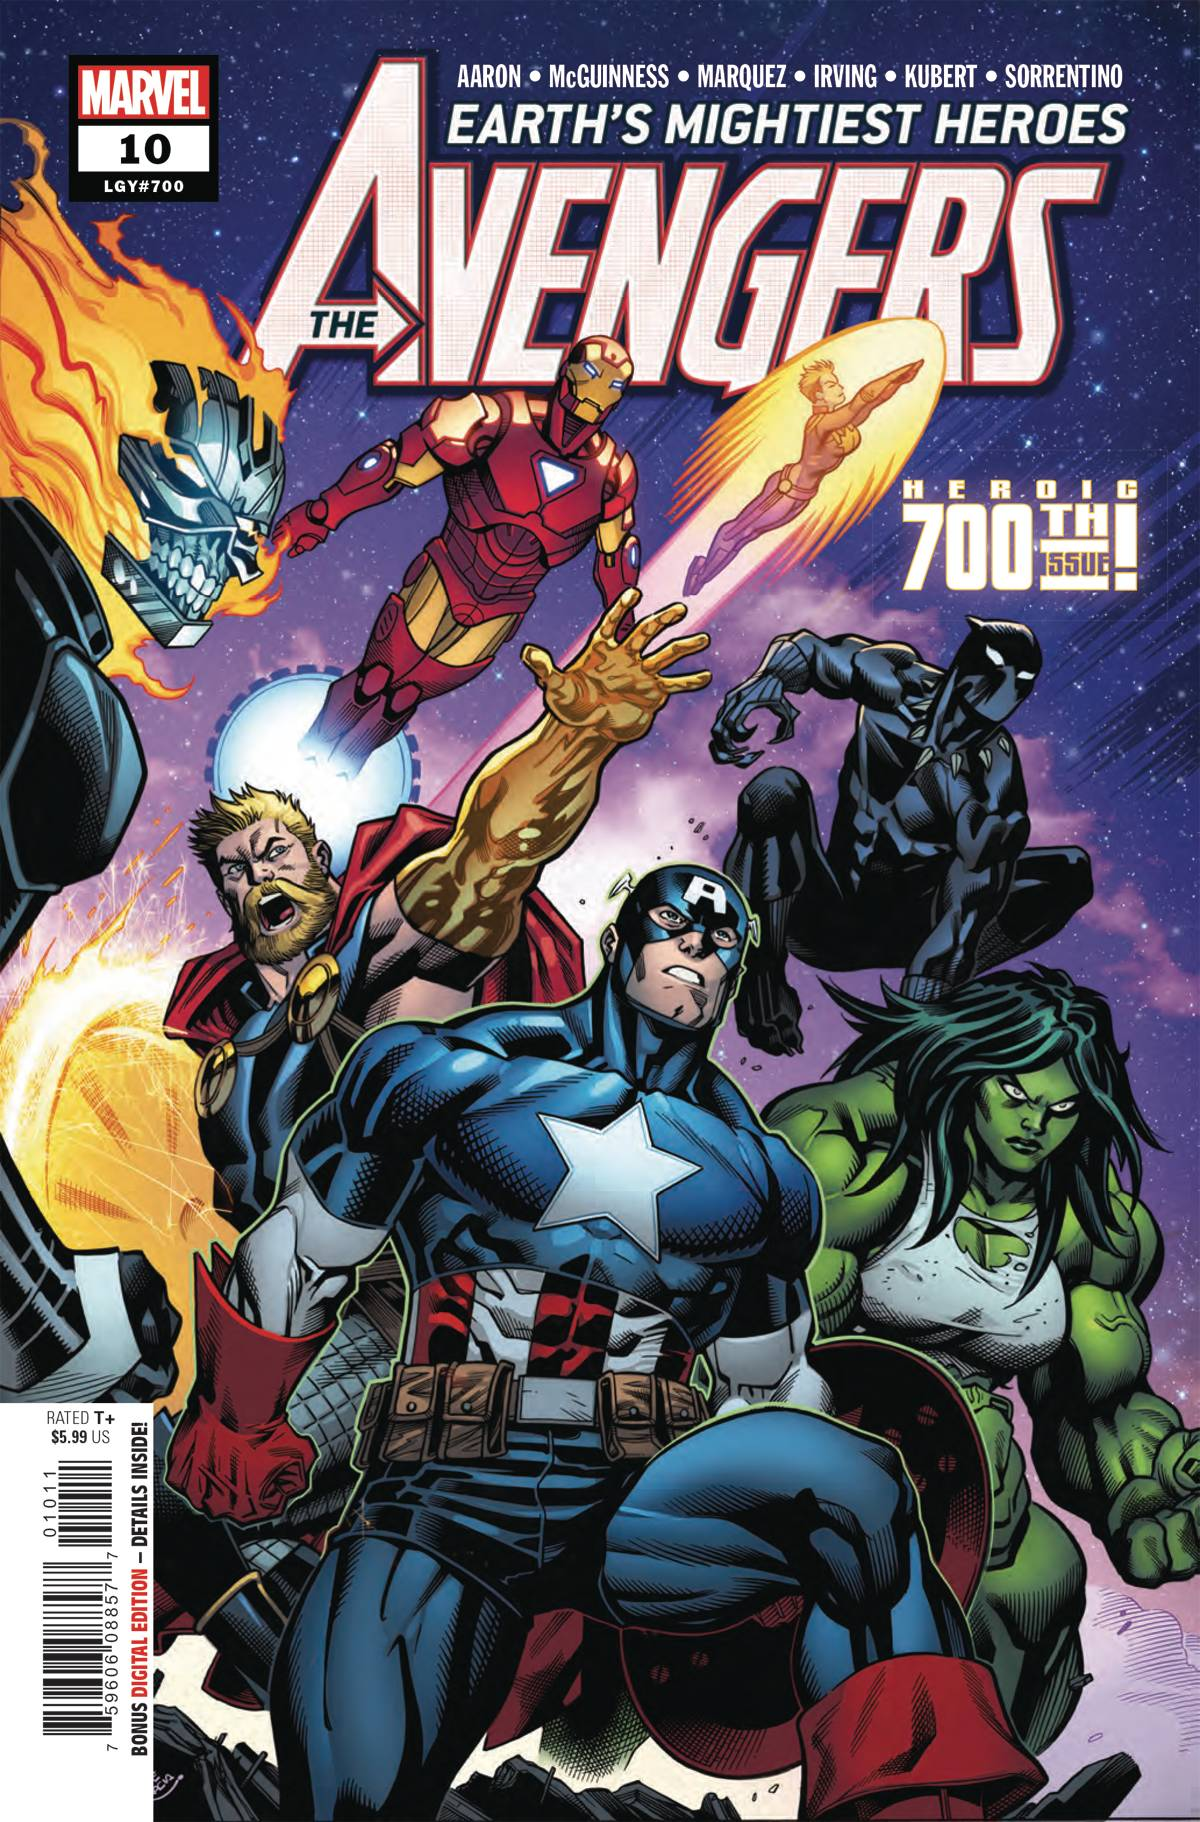 Avengers: Earth's Mightiest Heros #10 (2018)